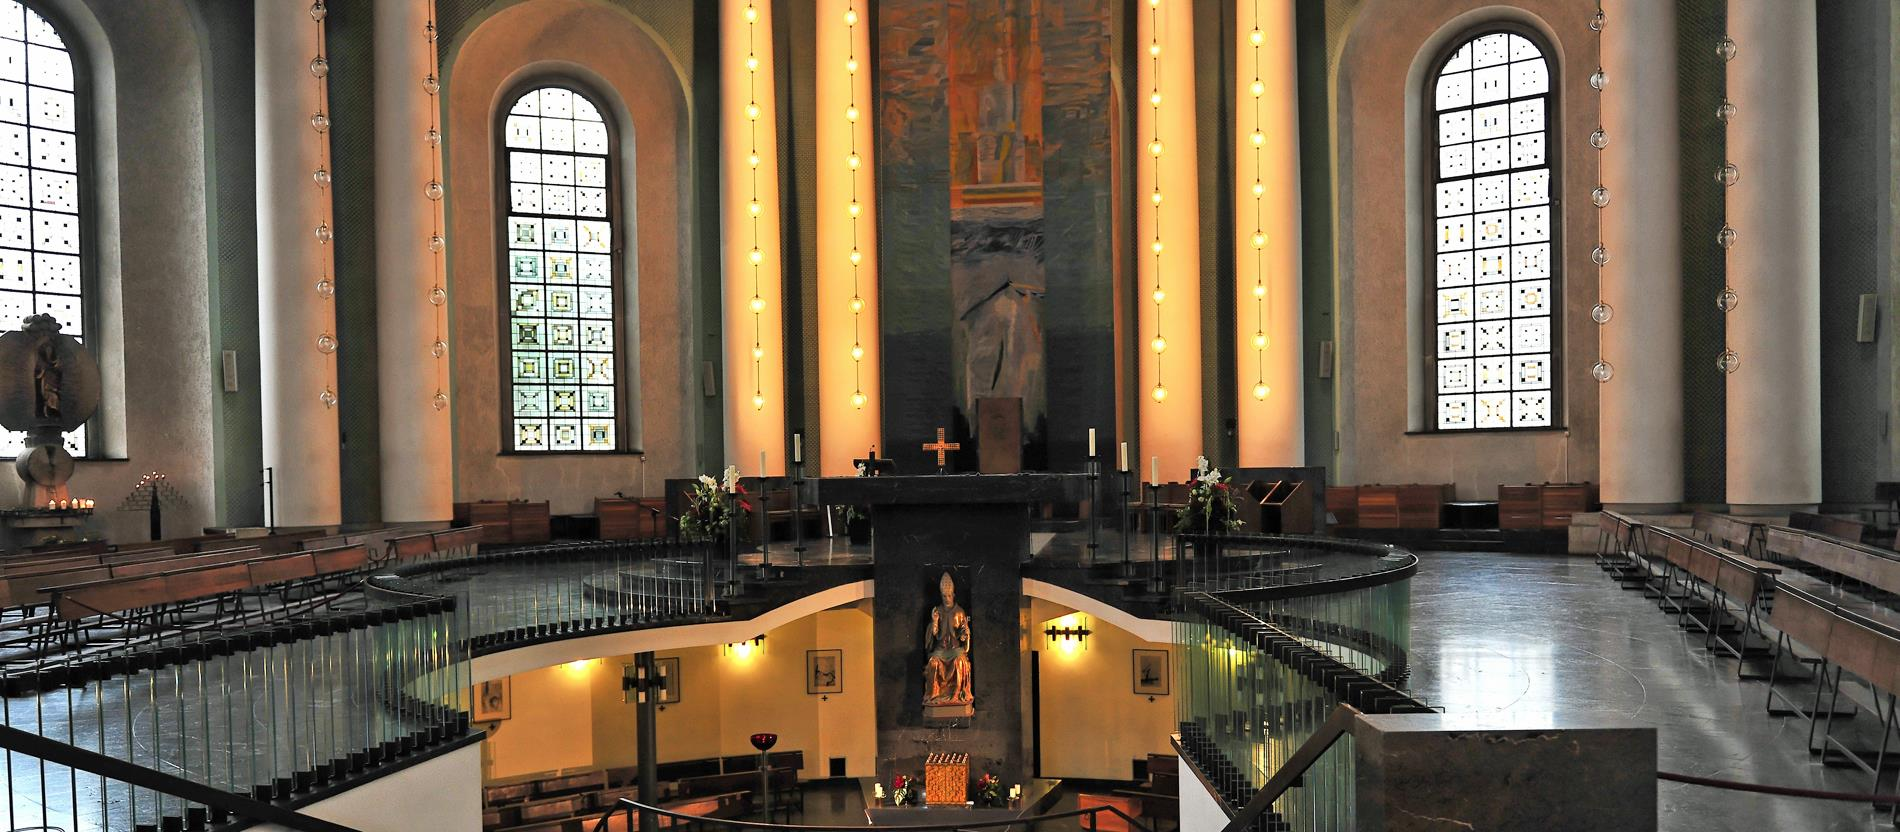 Die Hedwigskathedrale in Berlin.